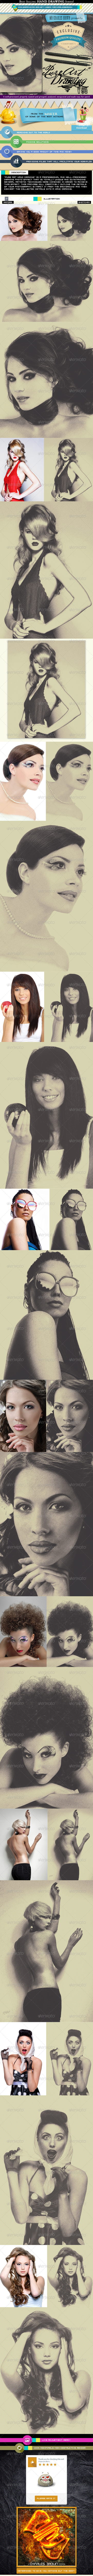 GraphicRiver Pure Art Hand Drawing 85 Contemporary Art 2 8103380